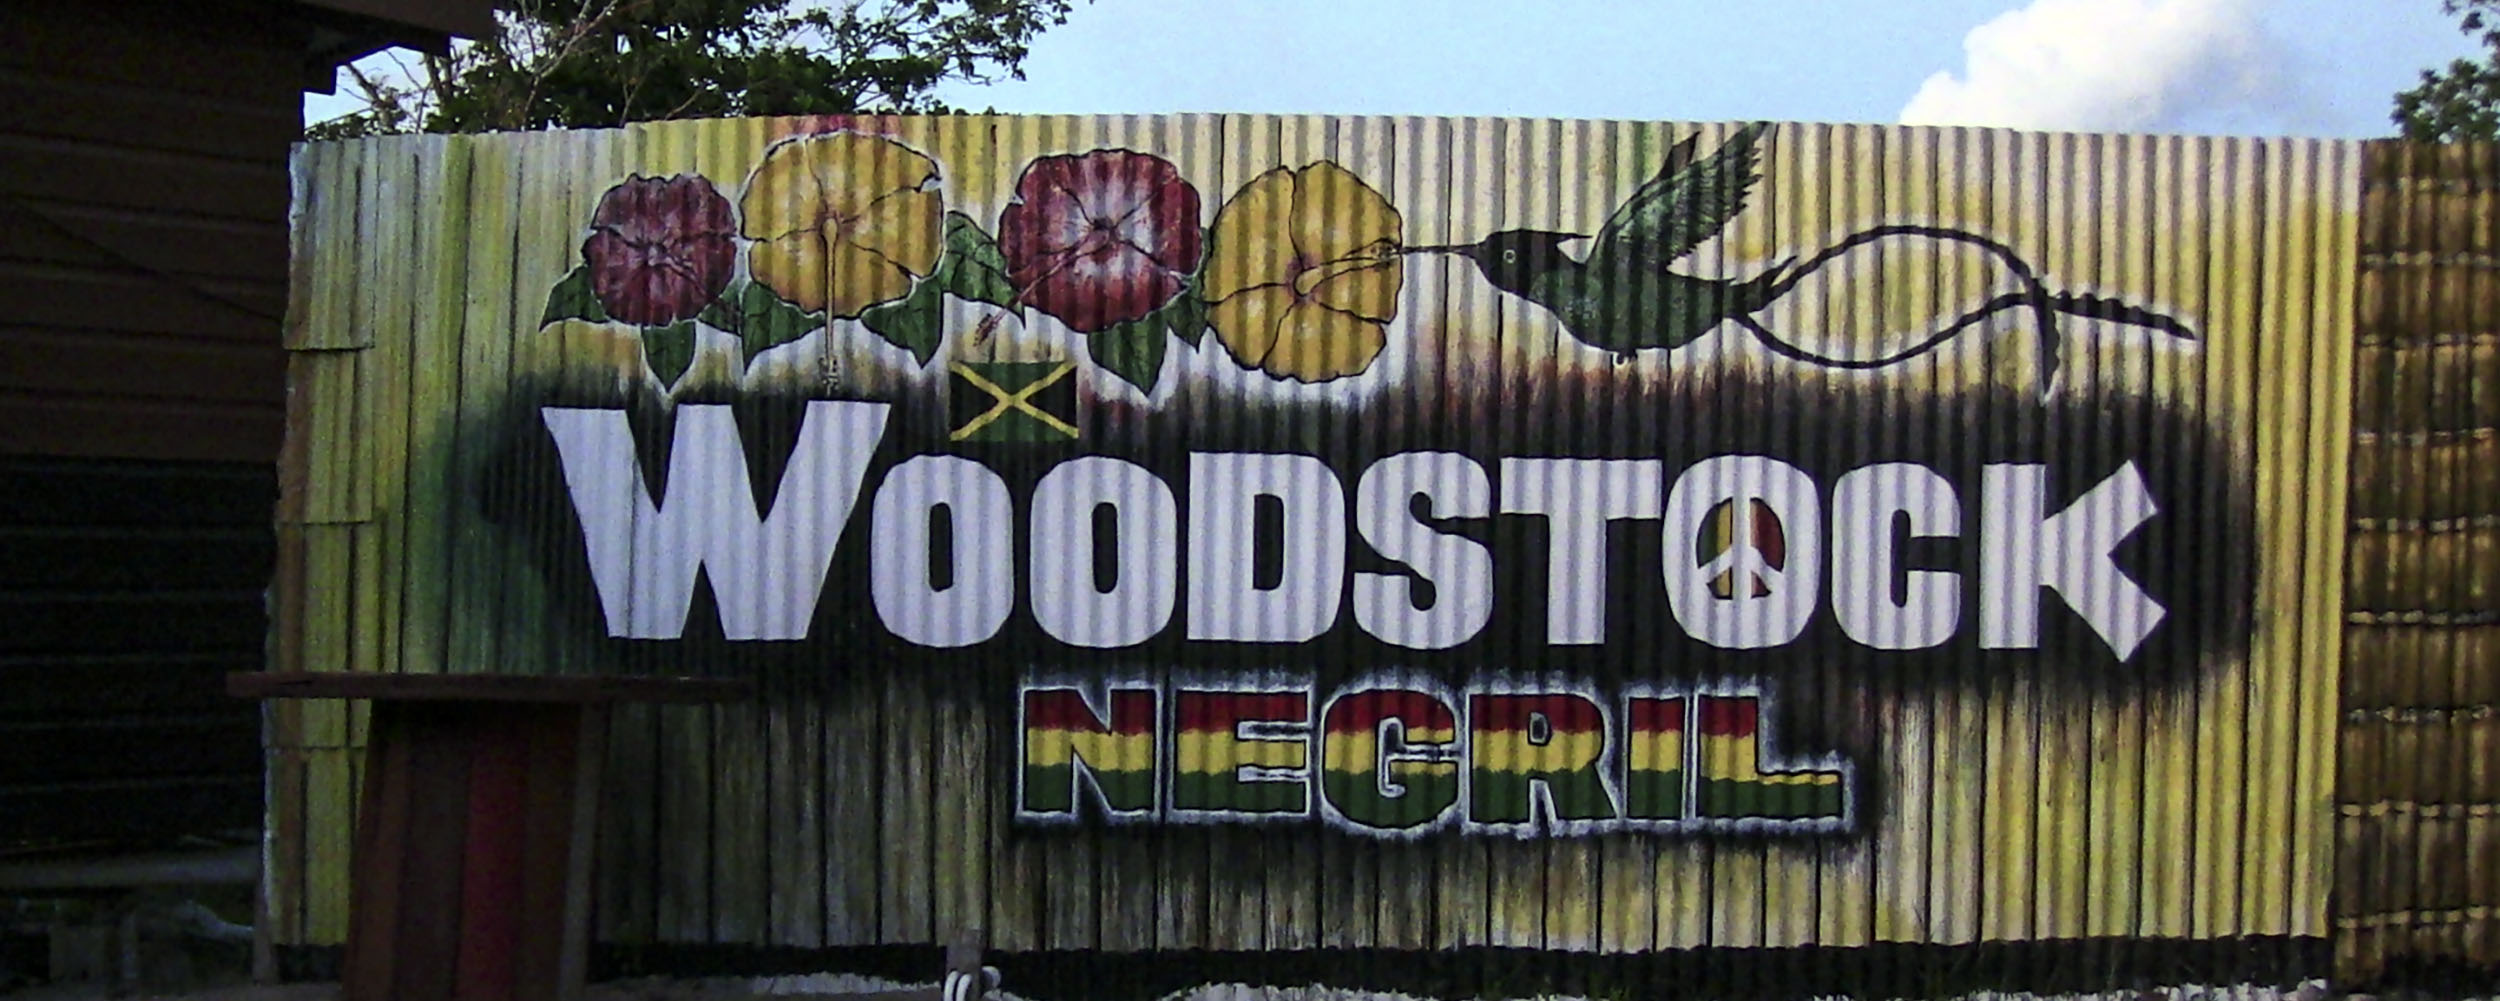 Woodstock Negril, Norman Manley Boulevard, Negril Jamaica